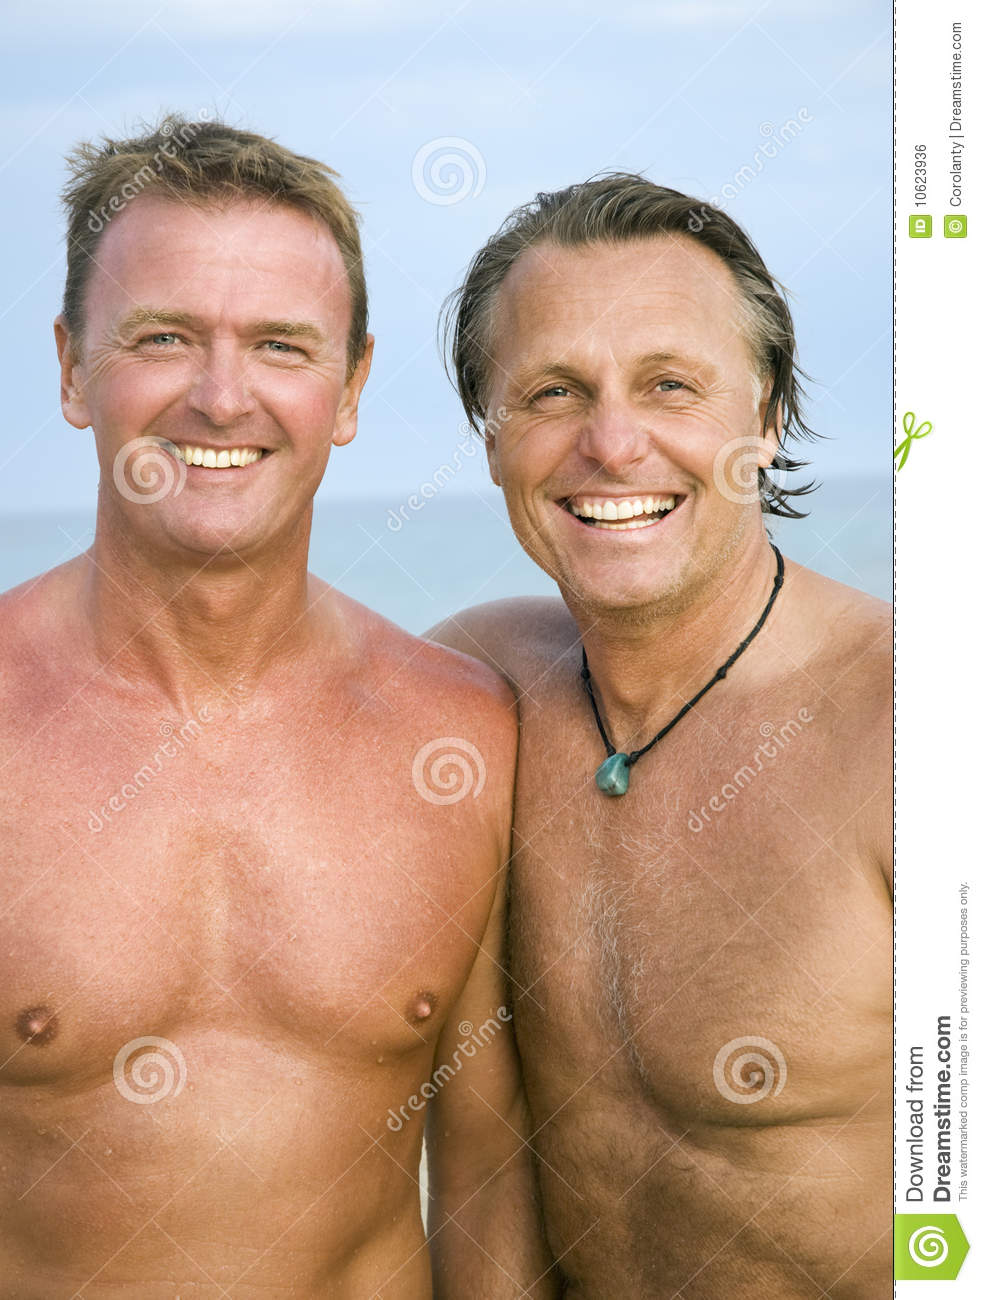 Two Gay Men On Beach